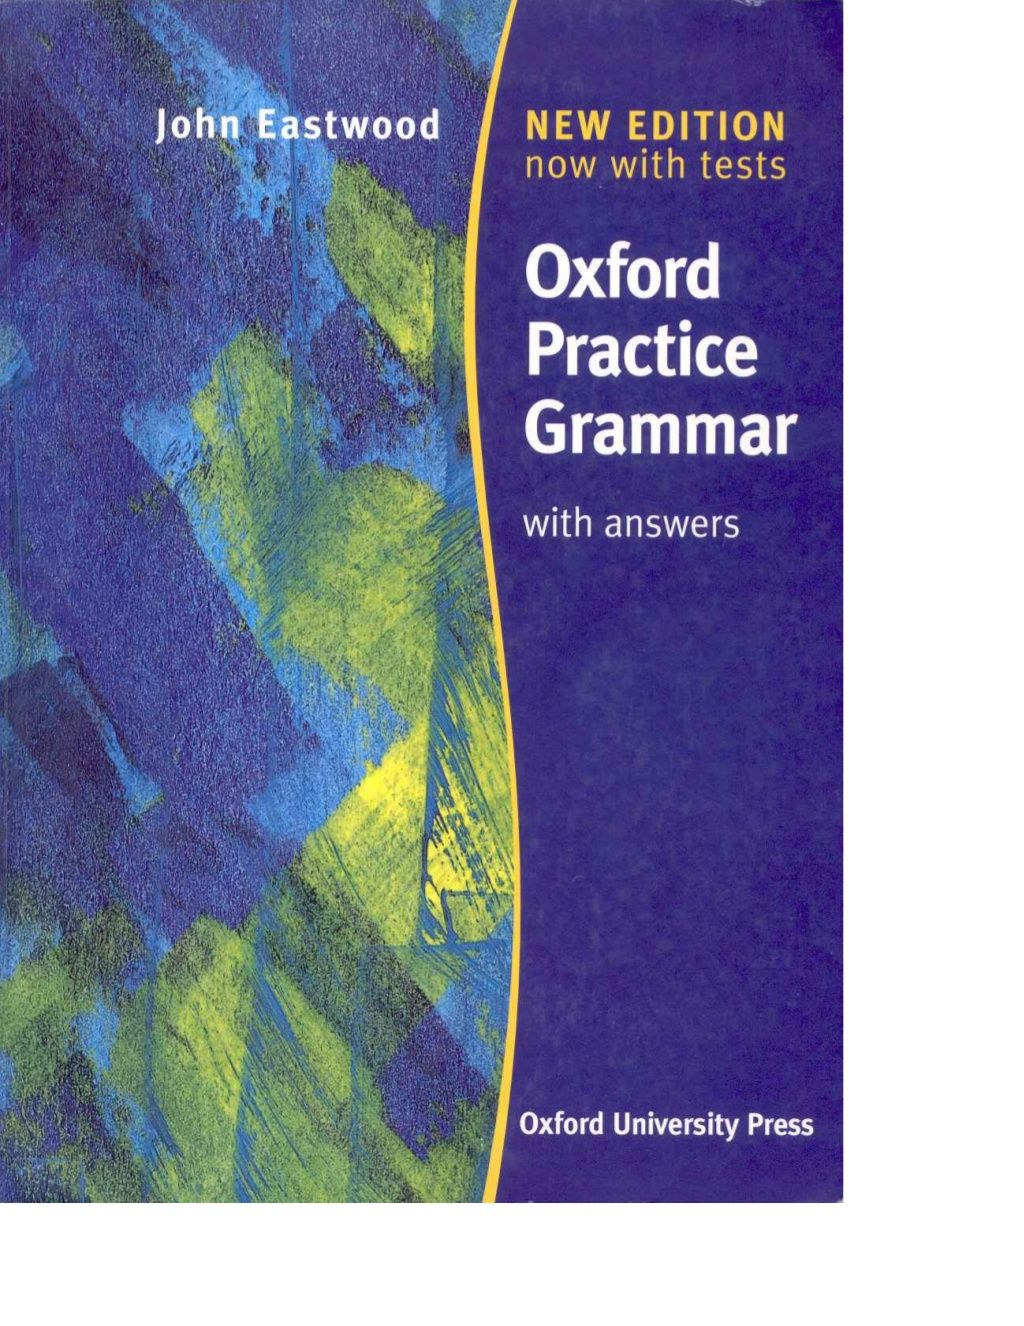 Oxford Libros Hijos Profesores English Book Oxford Practice Grammar With Answers 10118276